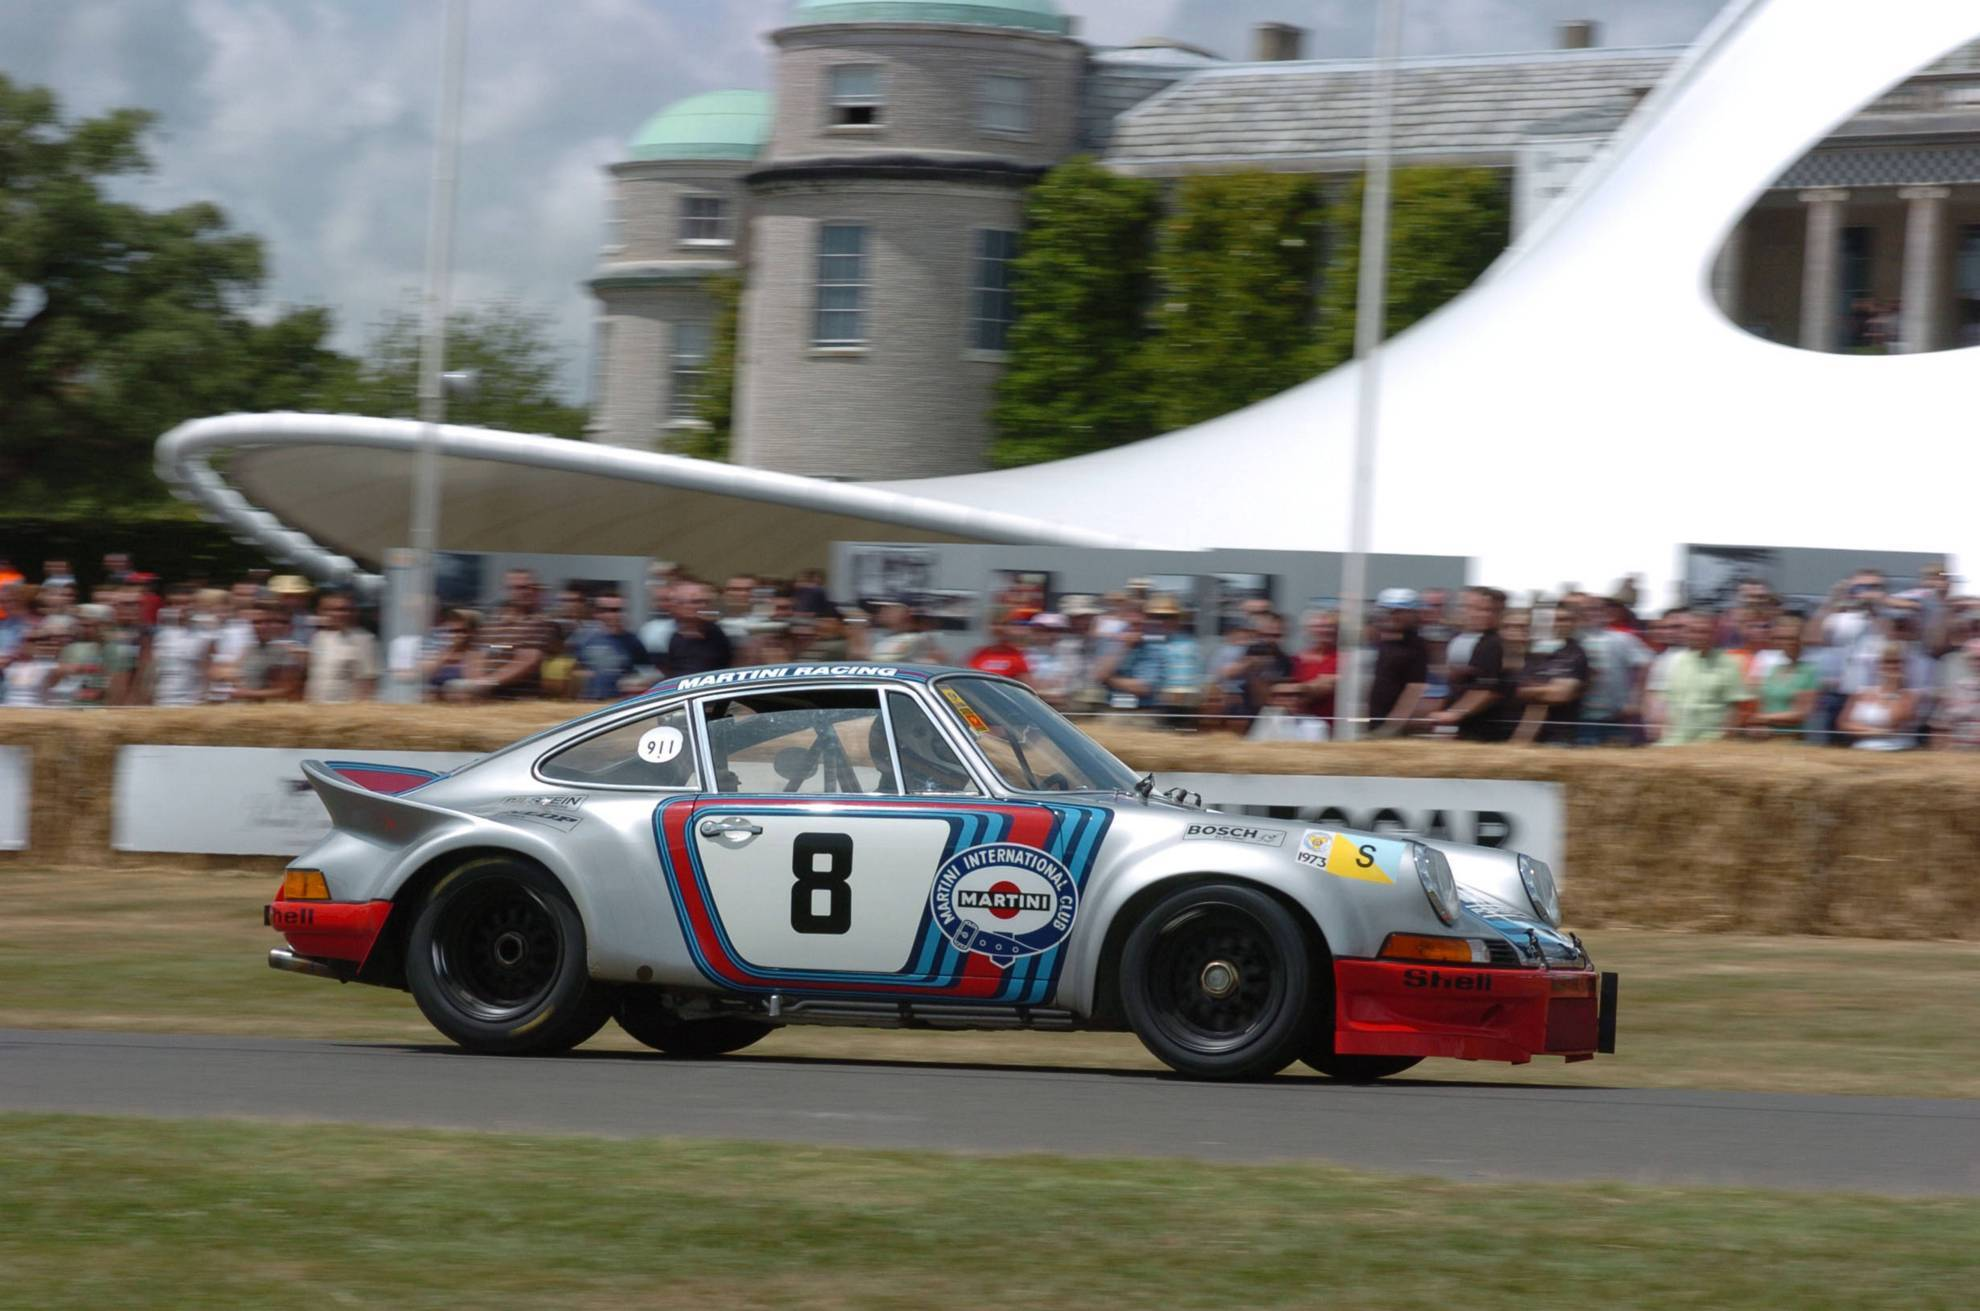 Goodwood Festival